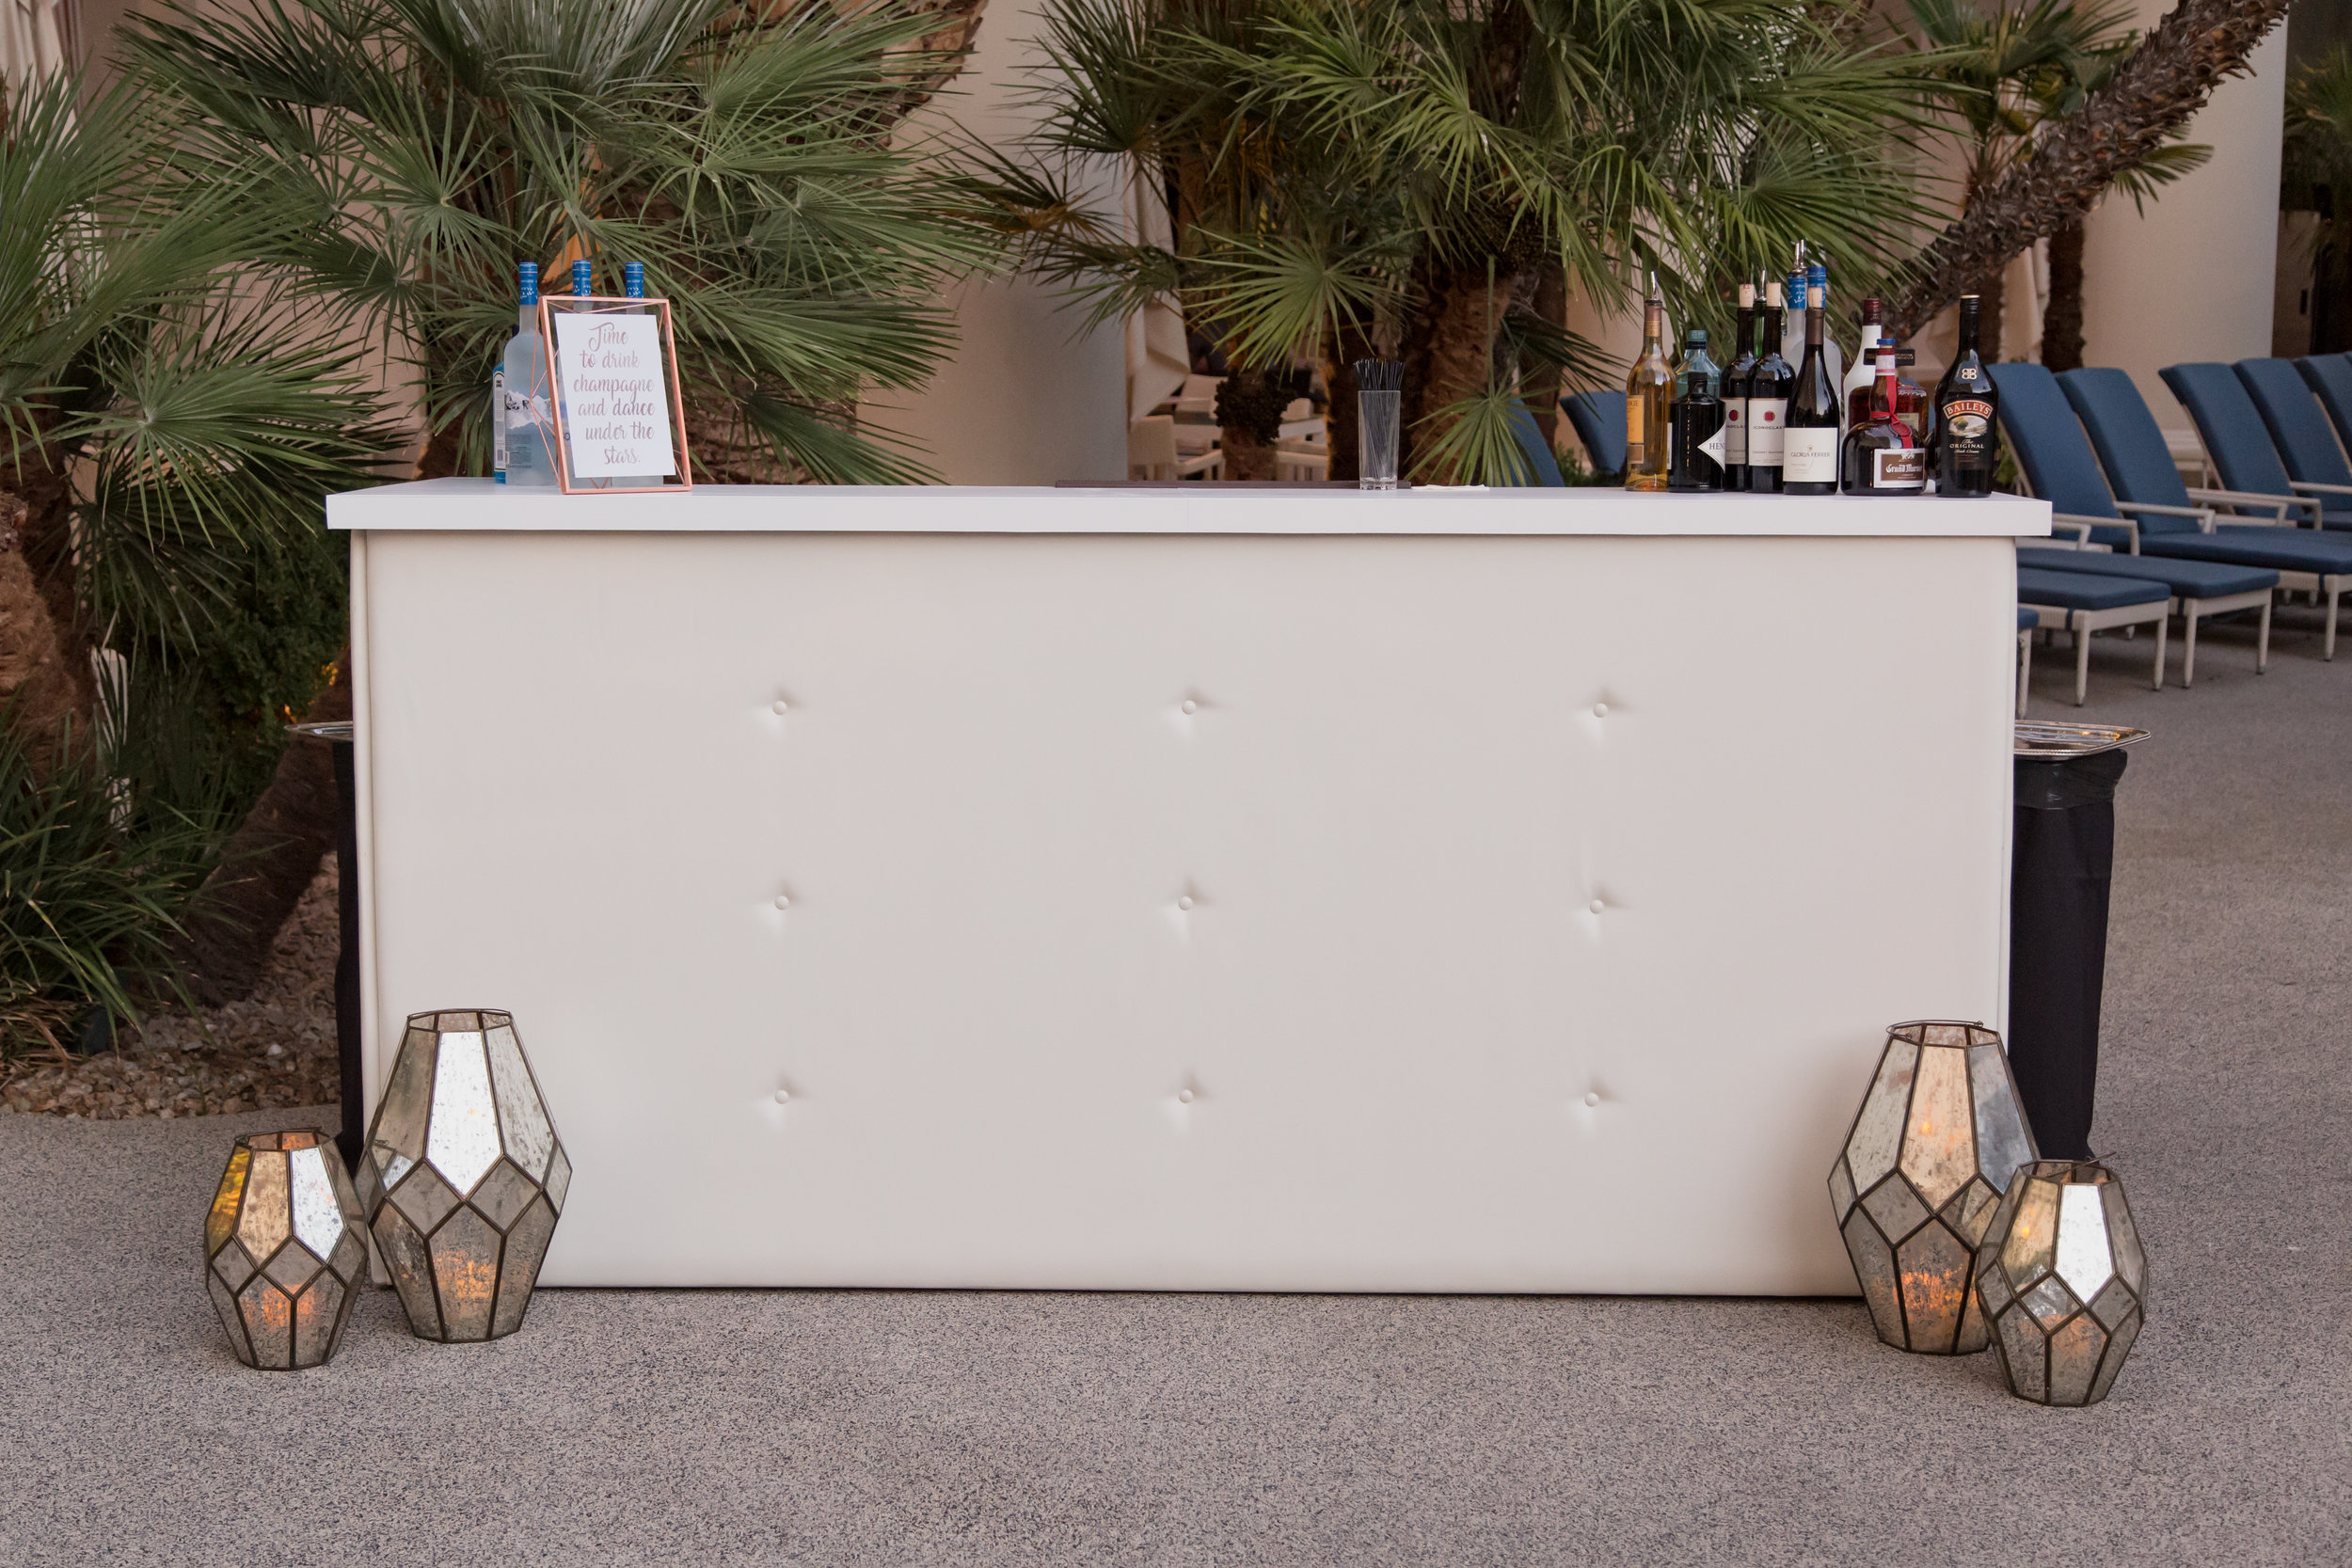 White tufted bar surround.Destination Wedding Planner  Andrea Eppolito ·Photos by  Adam Frazier Photography ·Floral and Decor by  Destinations by Design · Lighting by  LED Unplugged ·Venue · Invitations  Ceci New York  · Menus by  Alligator Soup